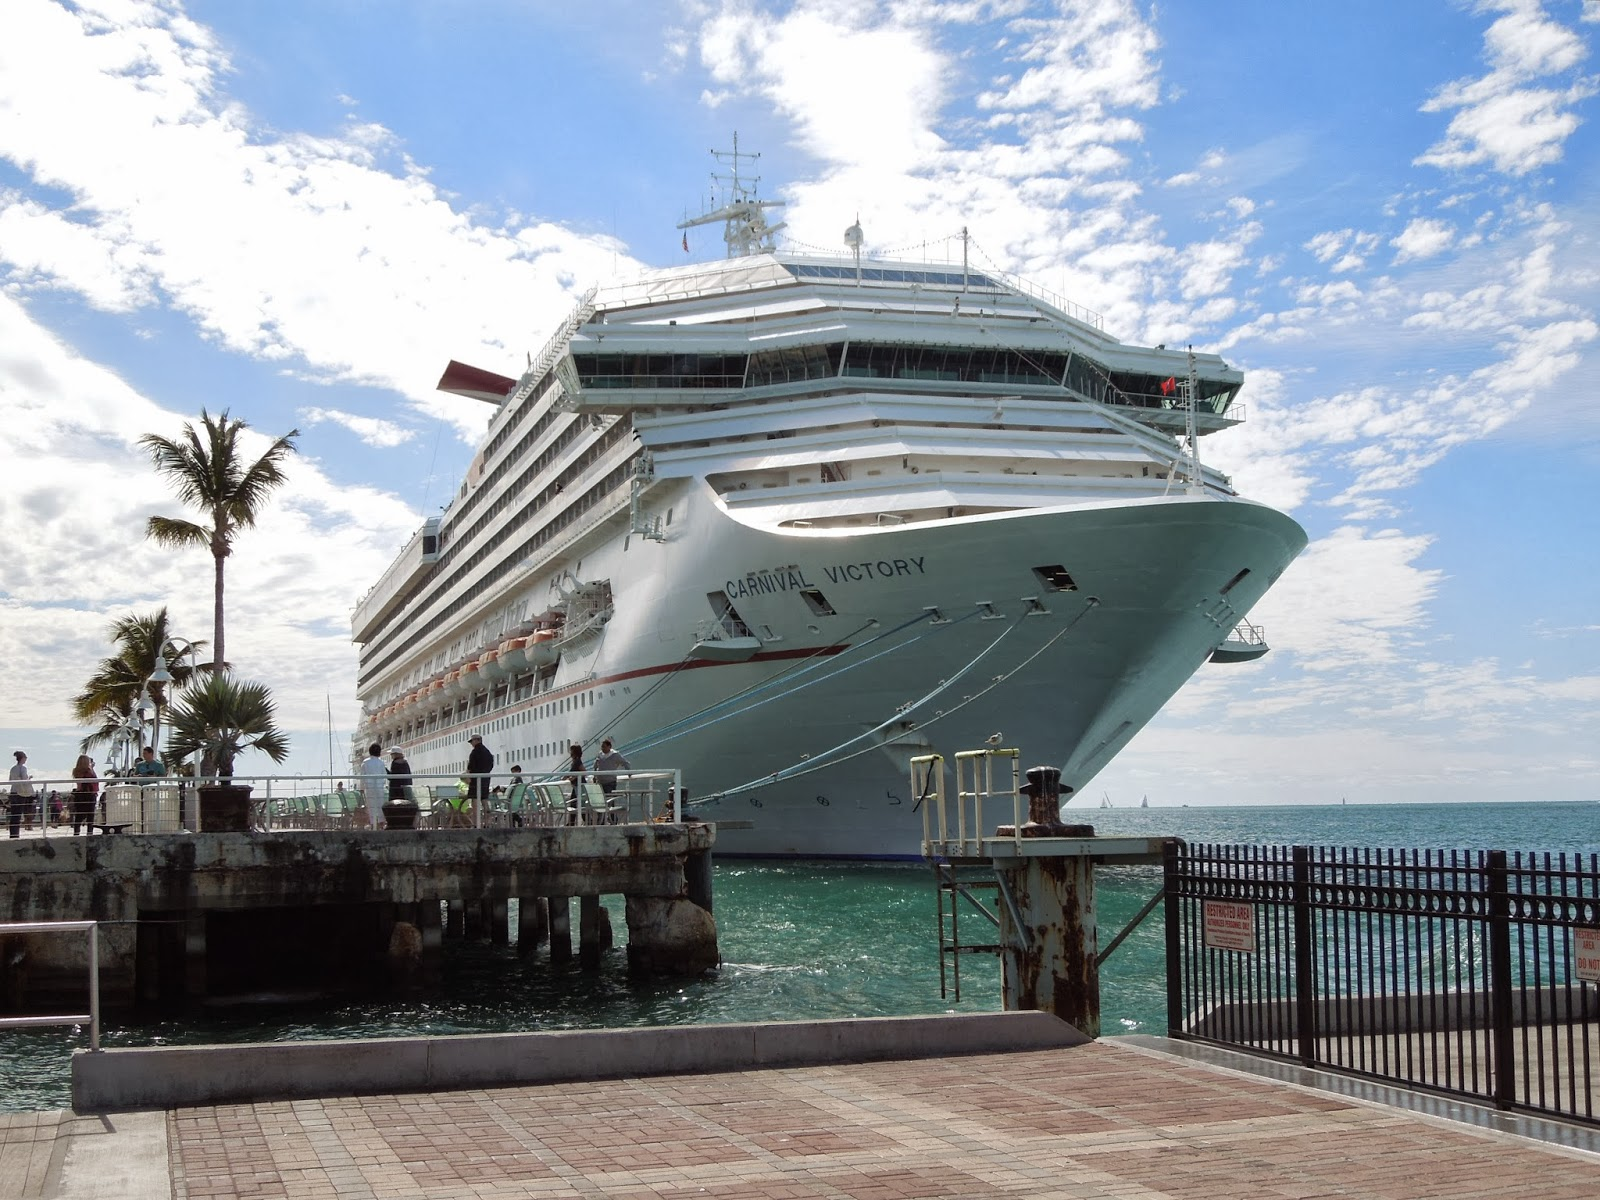 Carnival Victory in Key West